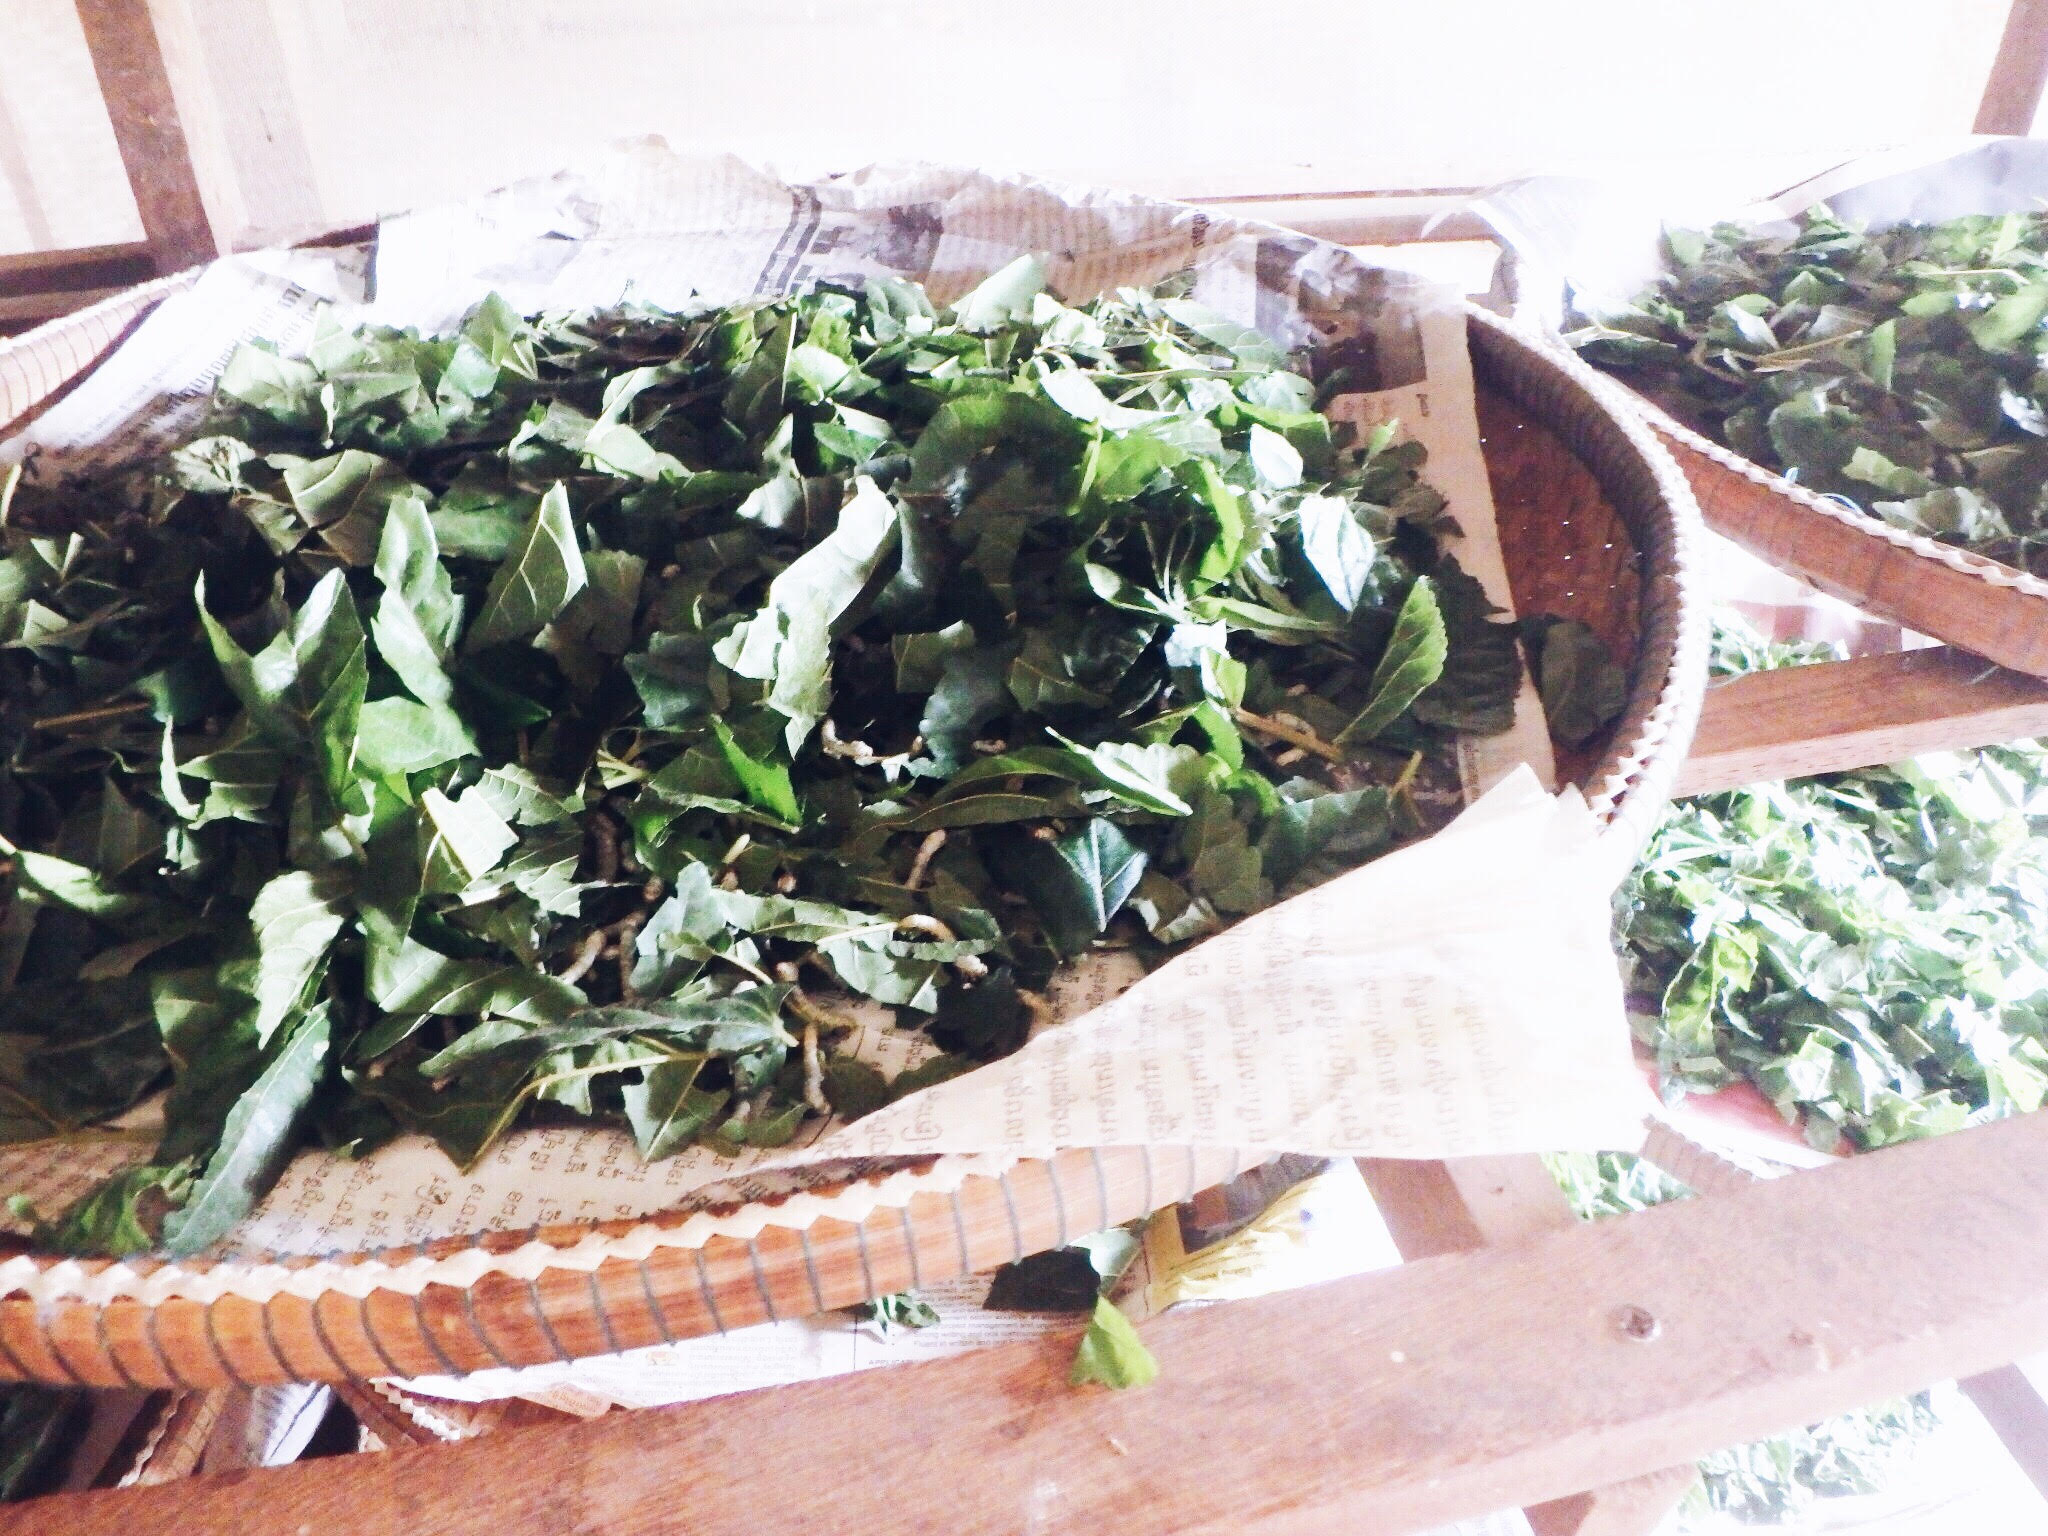 These are the mulberry leaves that are fed to a basket of silk worms.